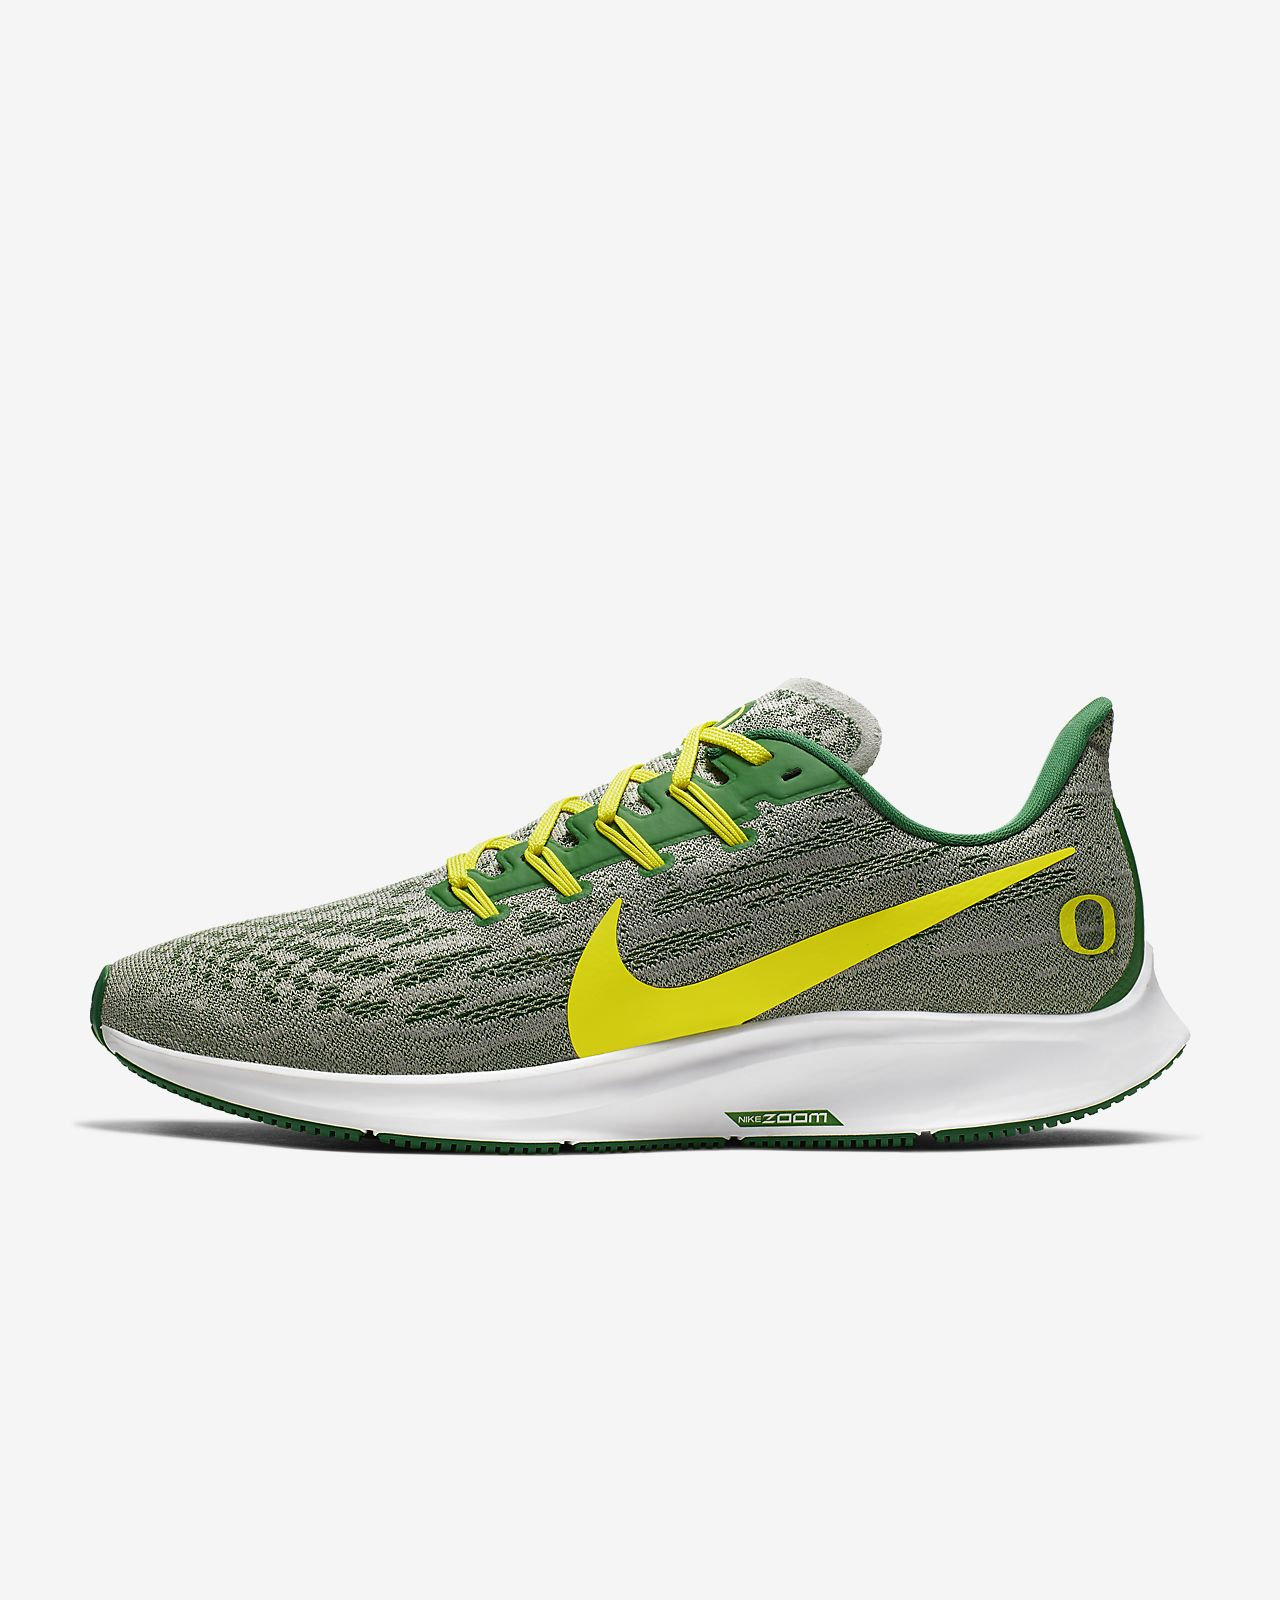 38fd938b Nike Air Zoom Pegasus 36 (Oregon) Men's Running Shoe